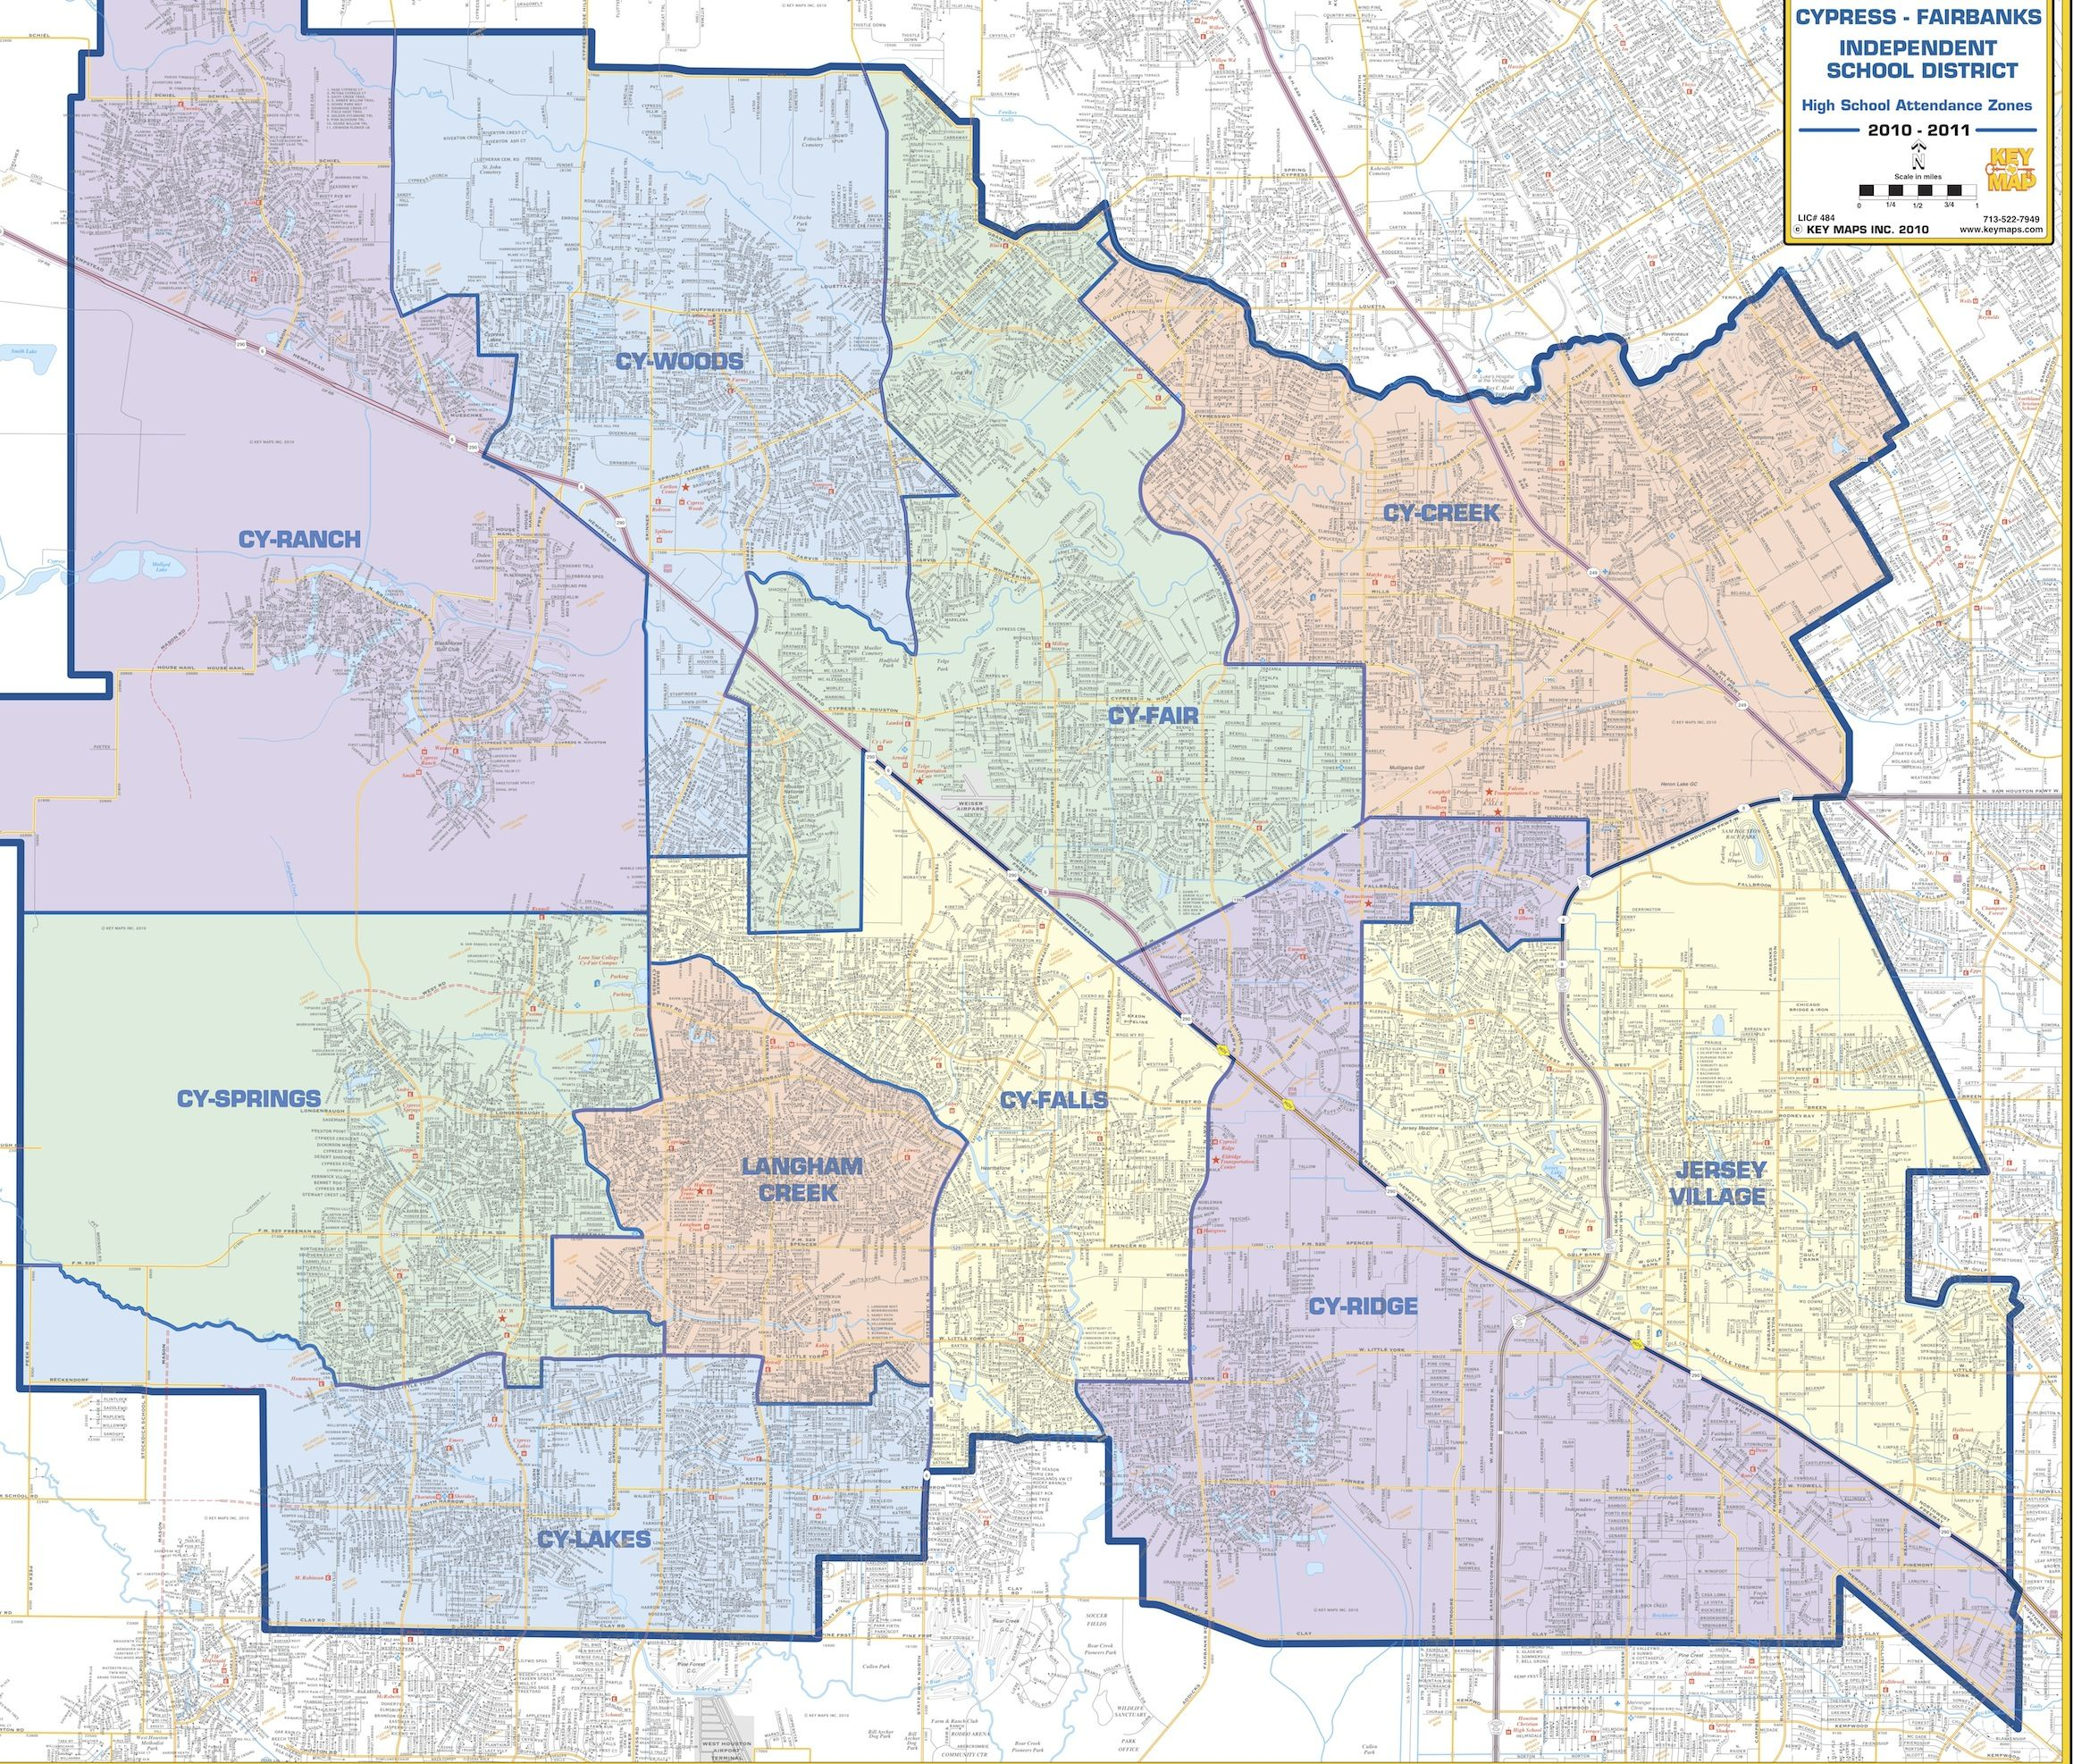 Map Of Texas High Schools.Cy Fair Isd Map Cy Fair Isd High School Boundary Map School